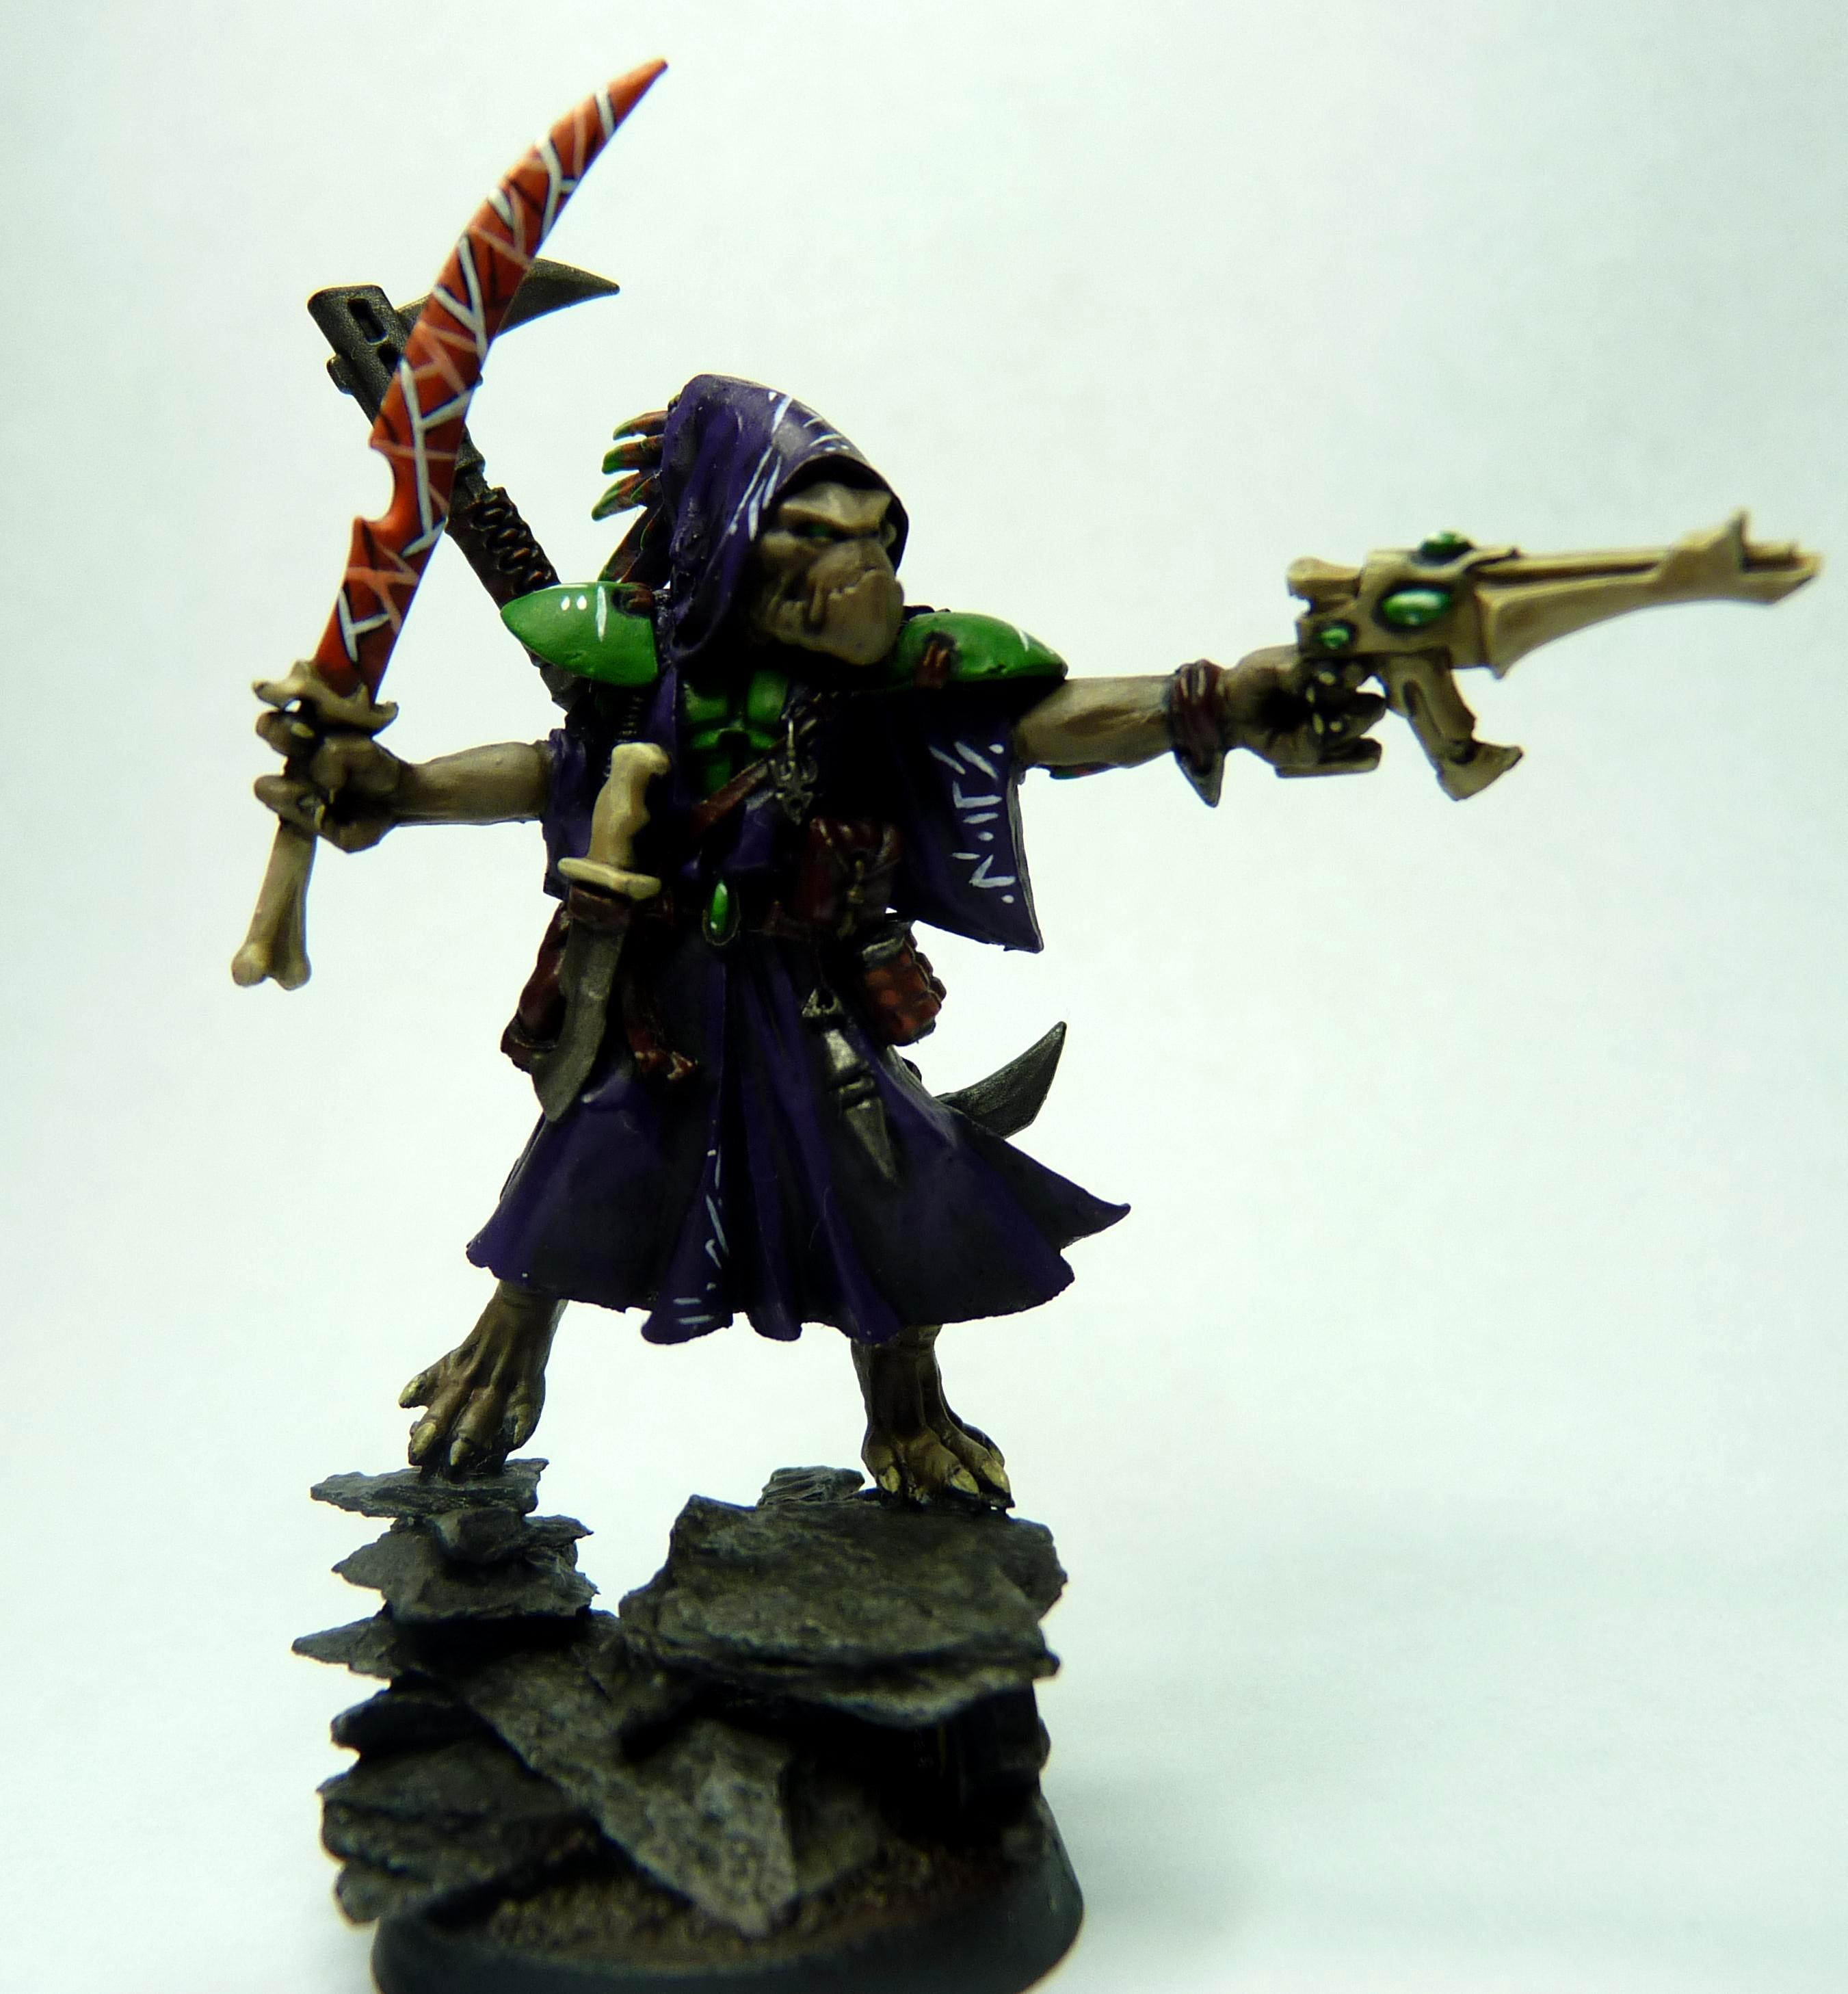 Conversion, Eldar, Kroot, Rangers, Shaper, Warhammer 40,000